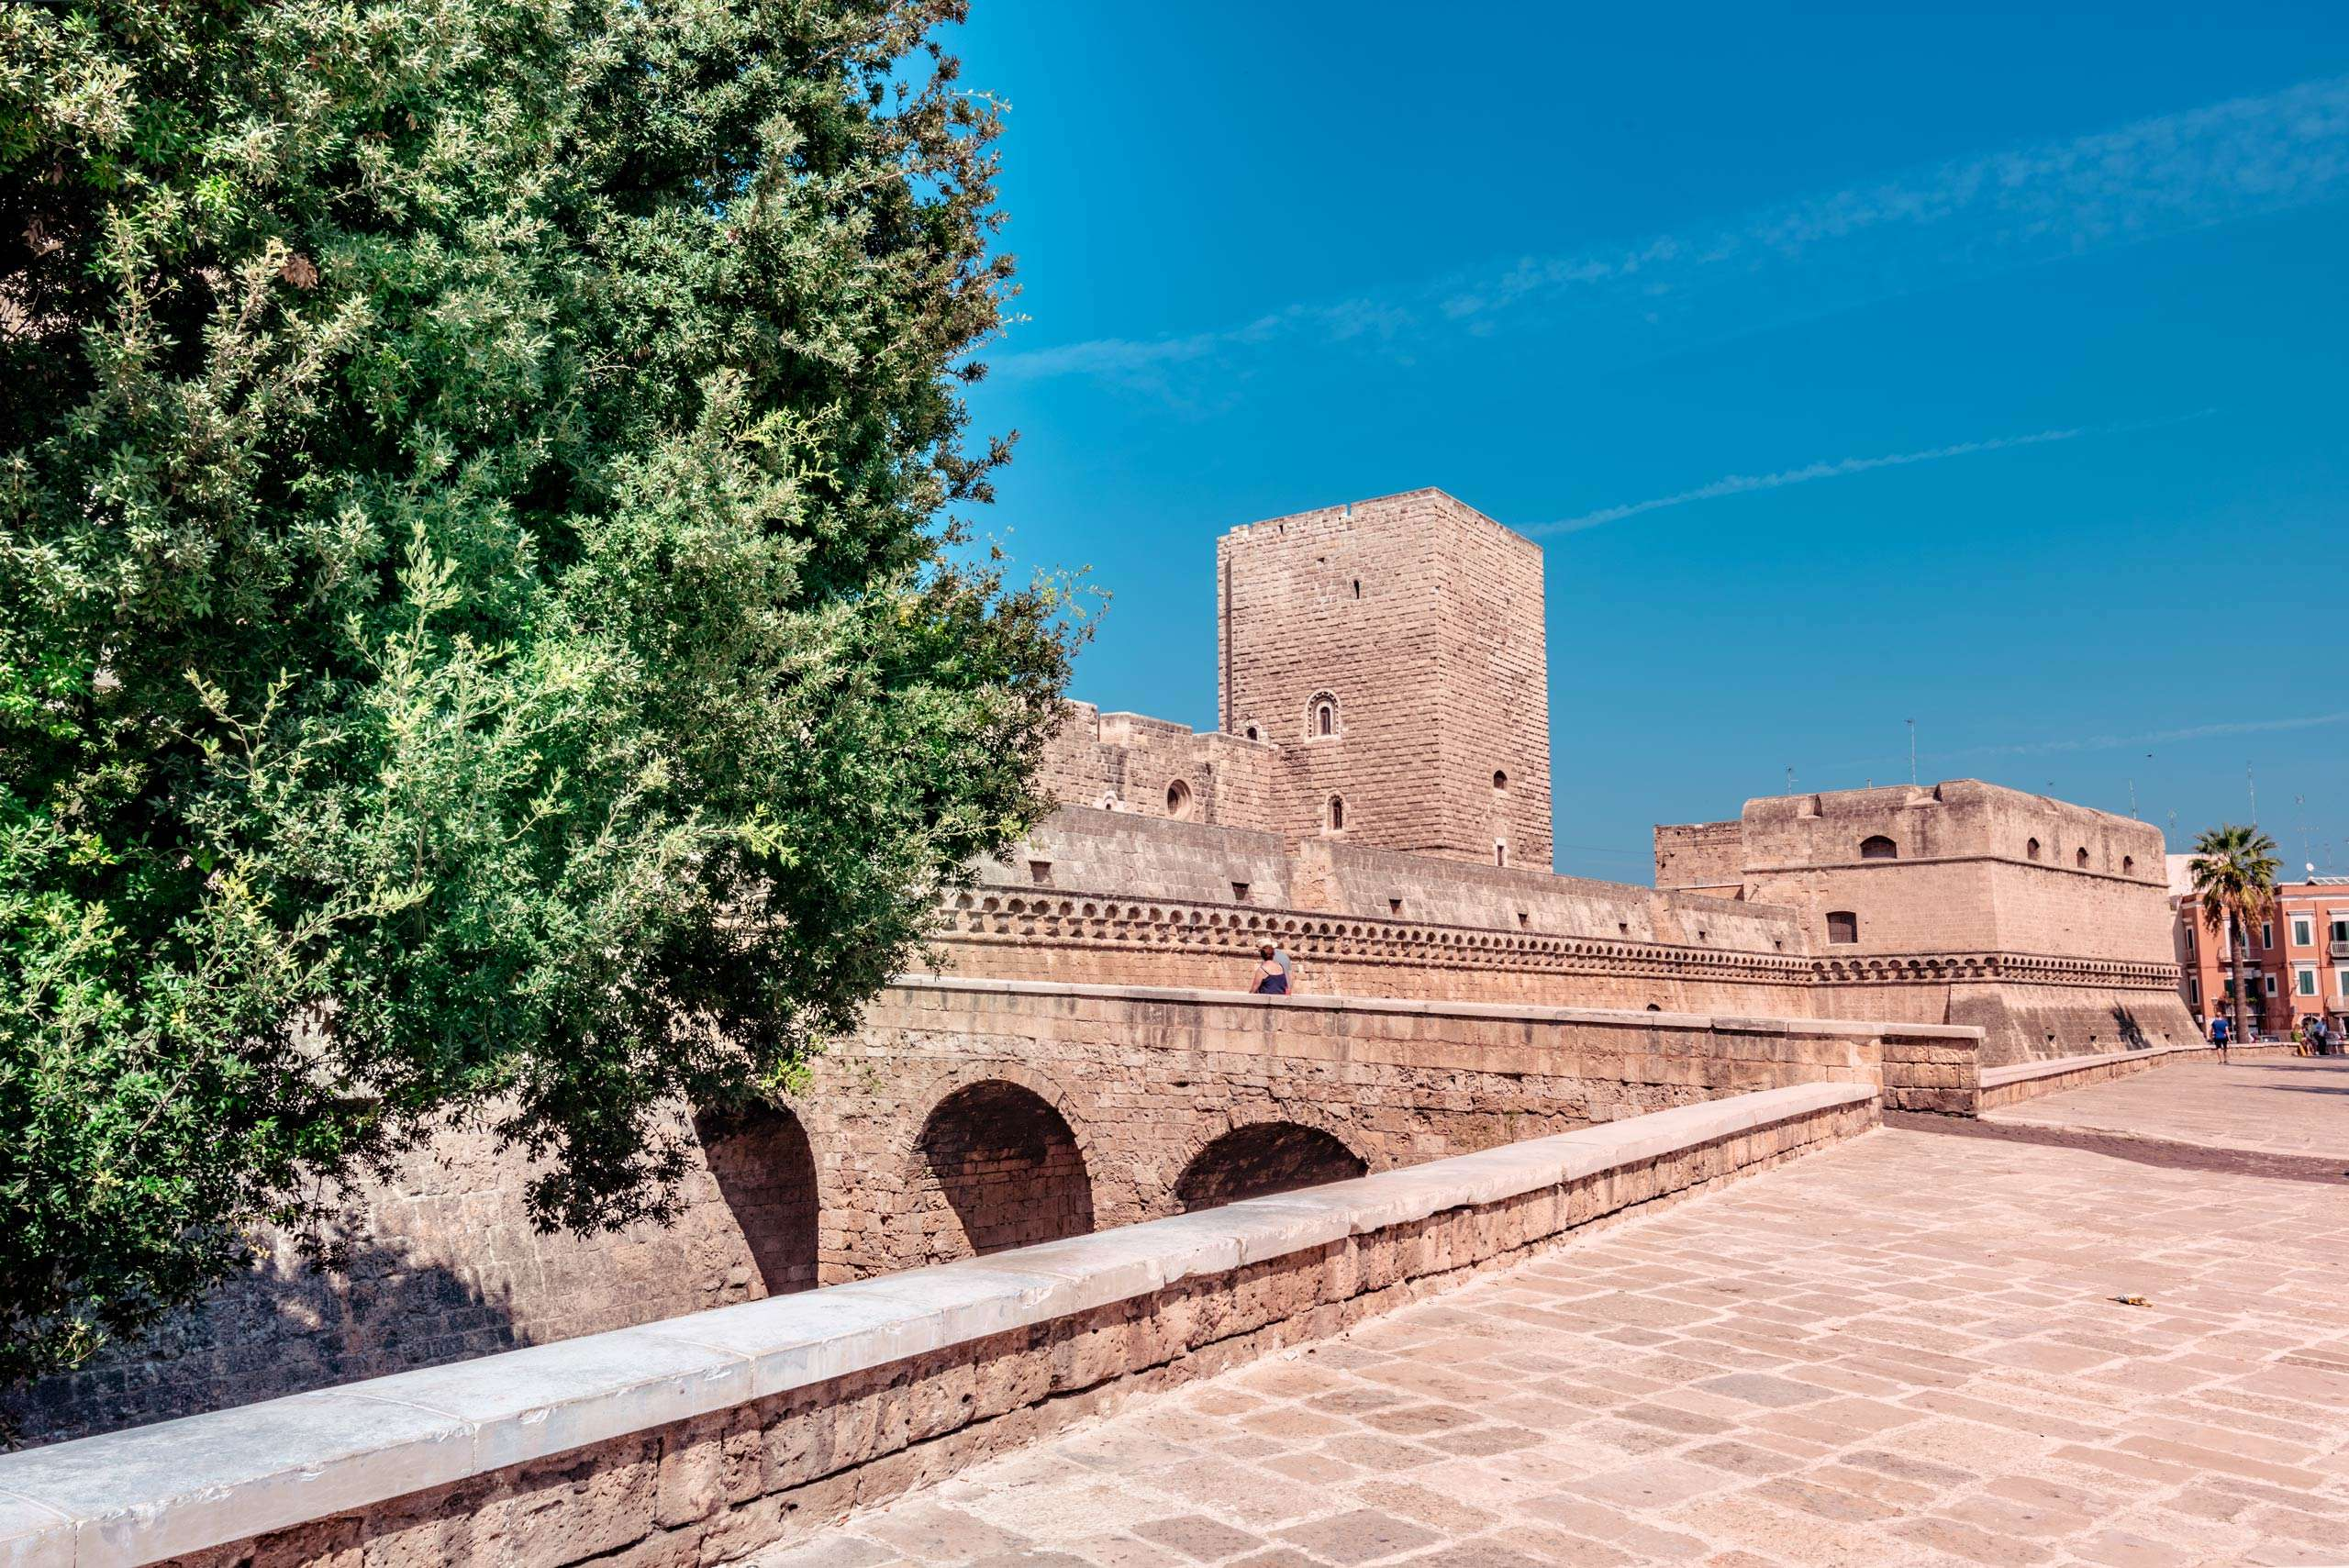 Panoramic of Swabian Castle in the old town of Bari city.